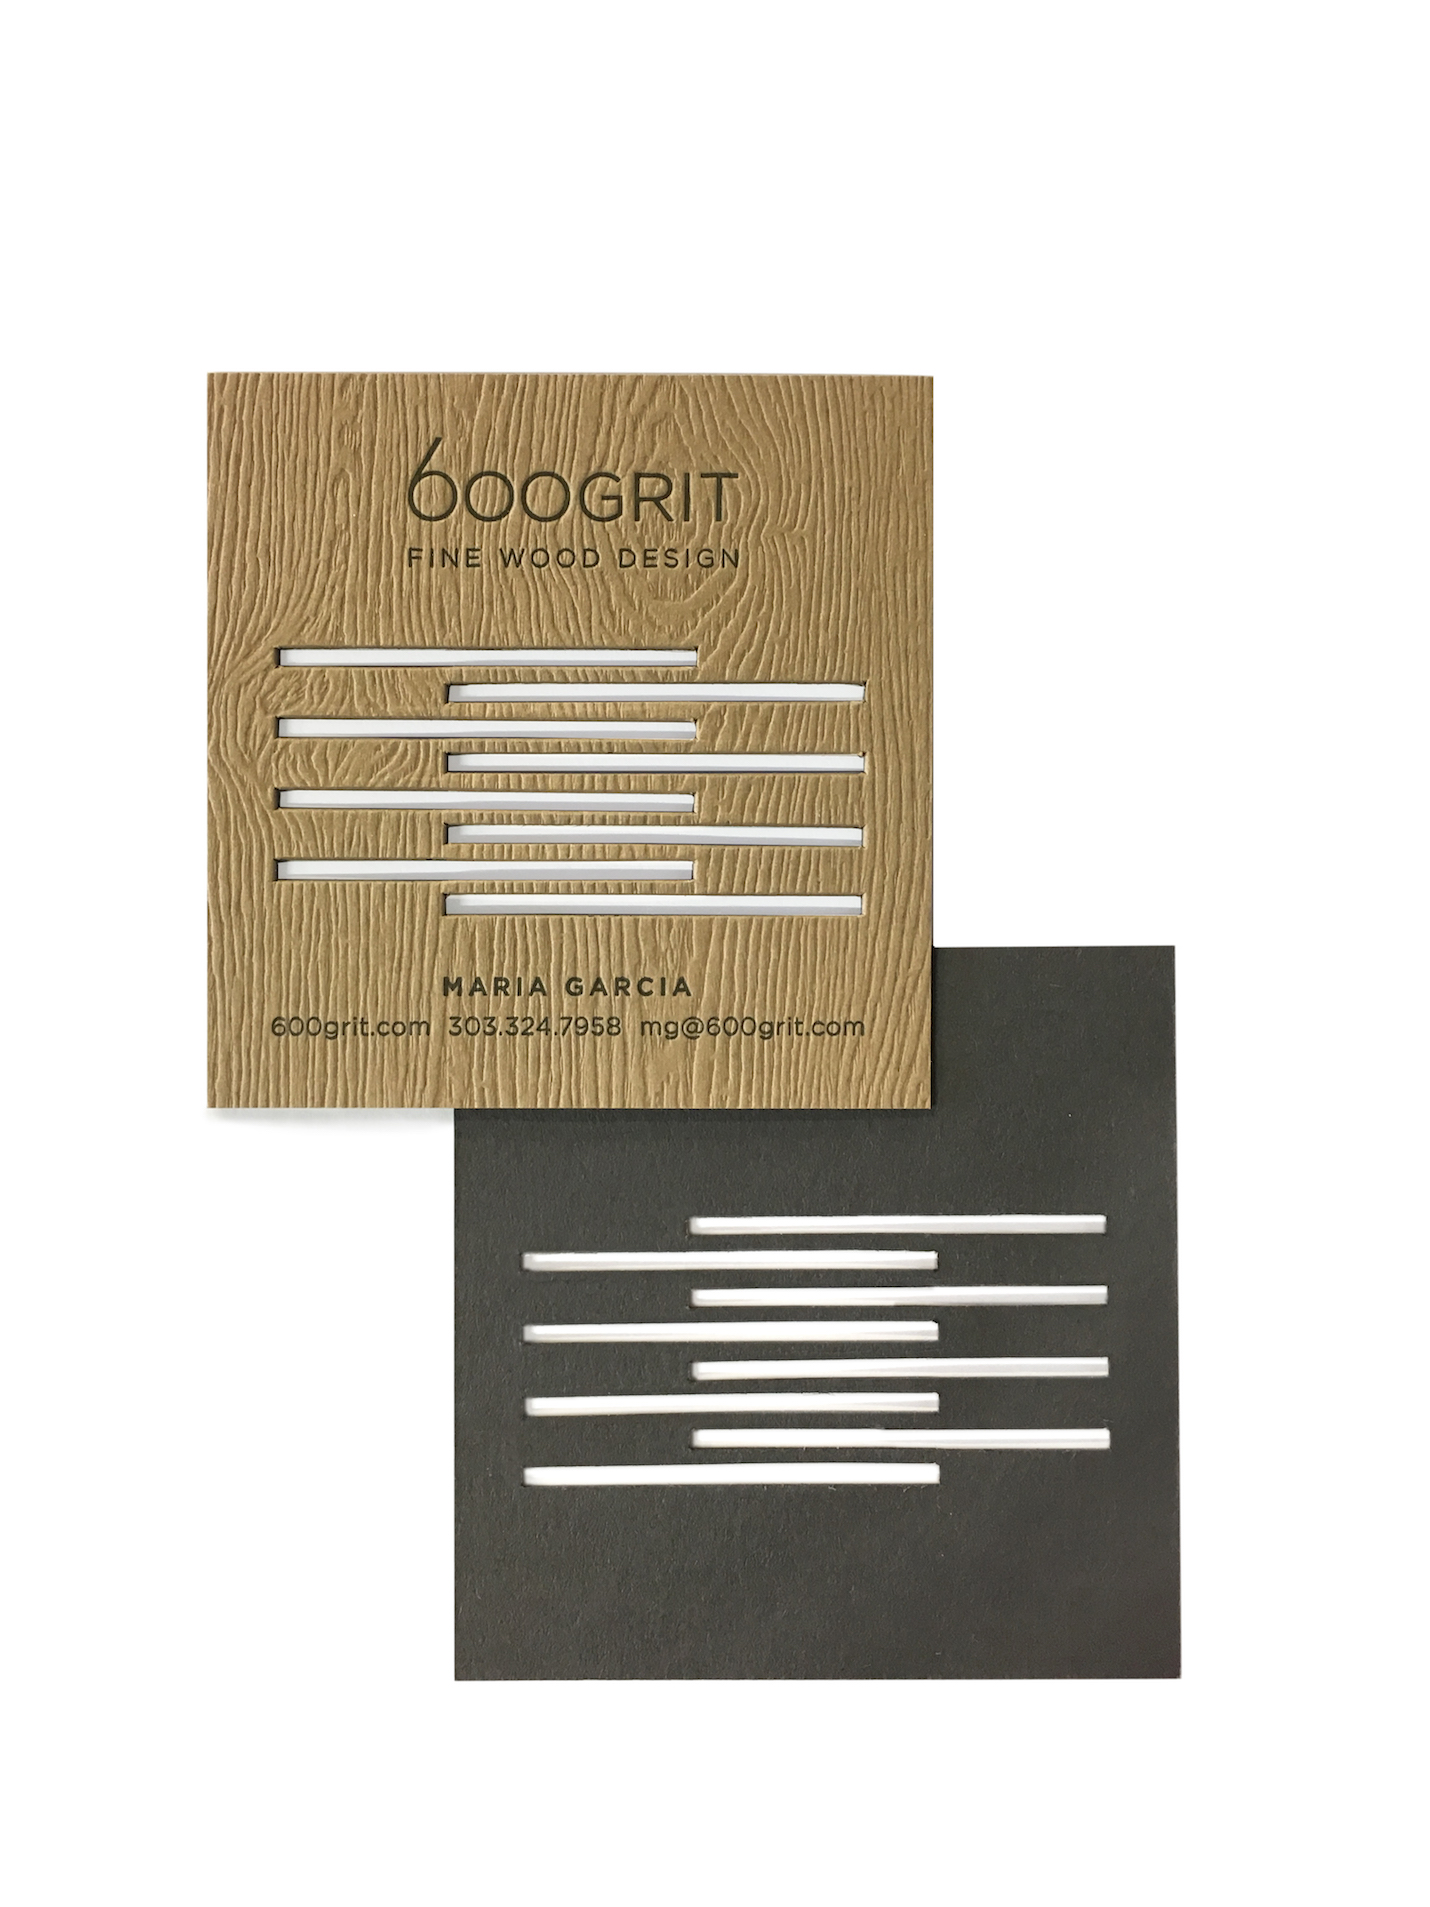 600 grit business cards paperspecs